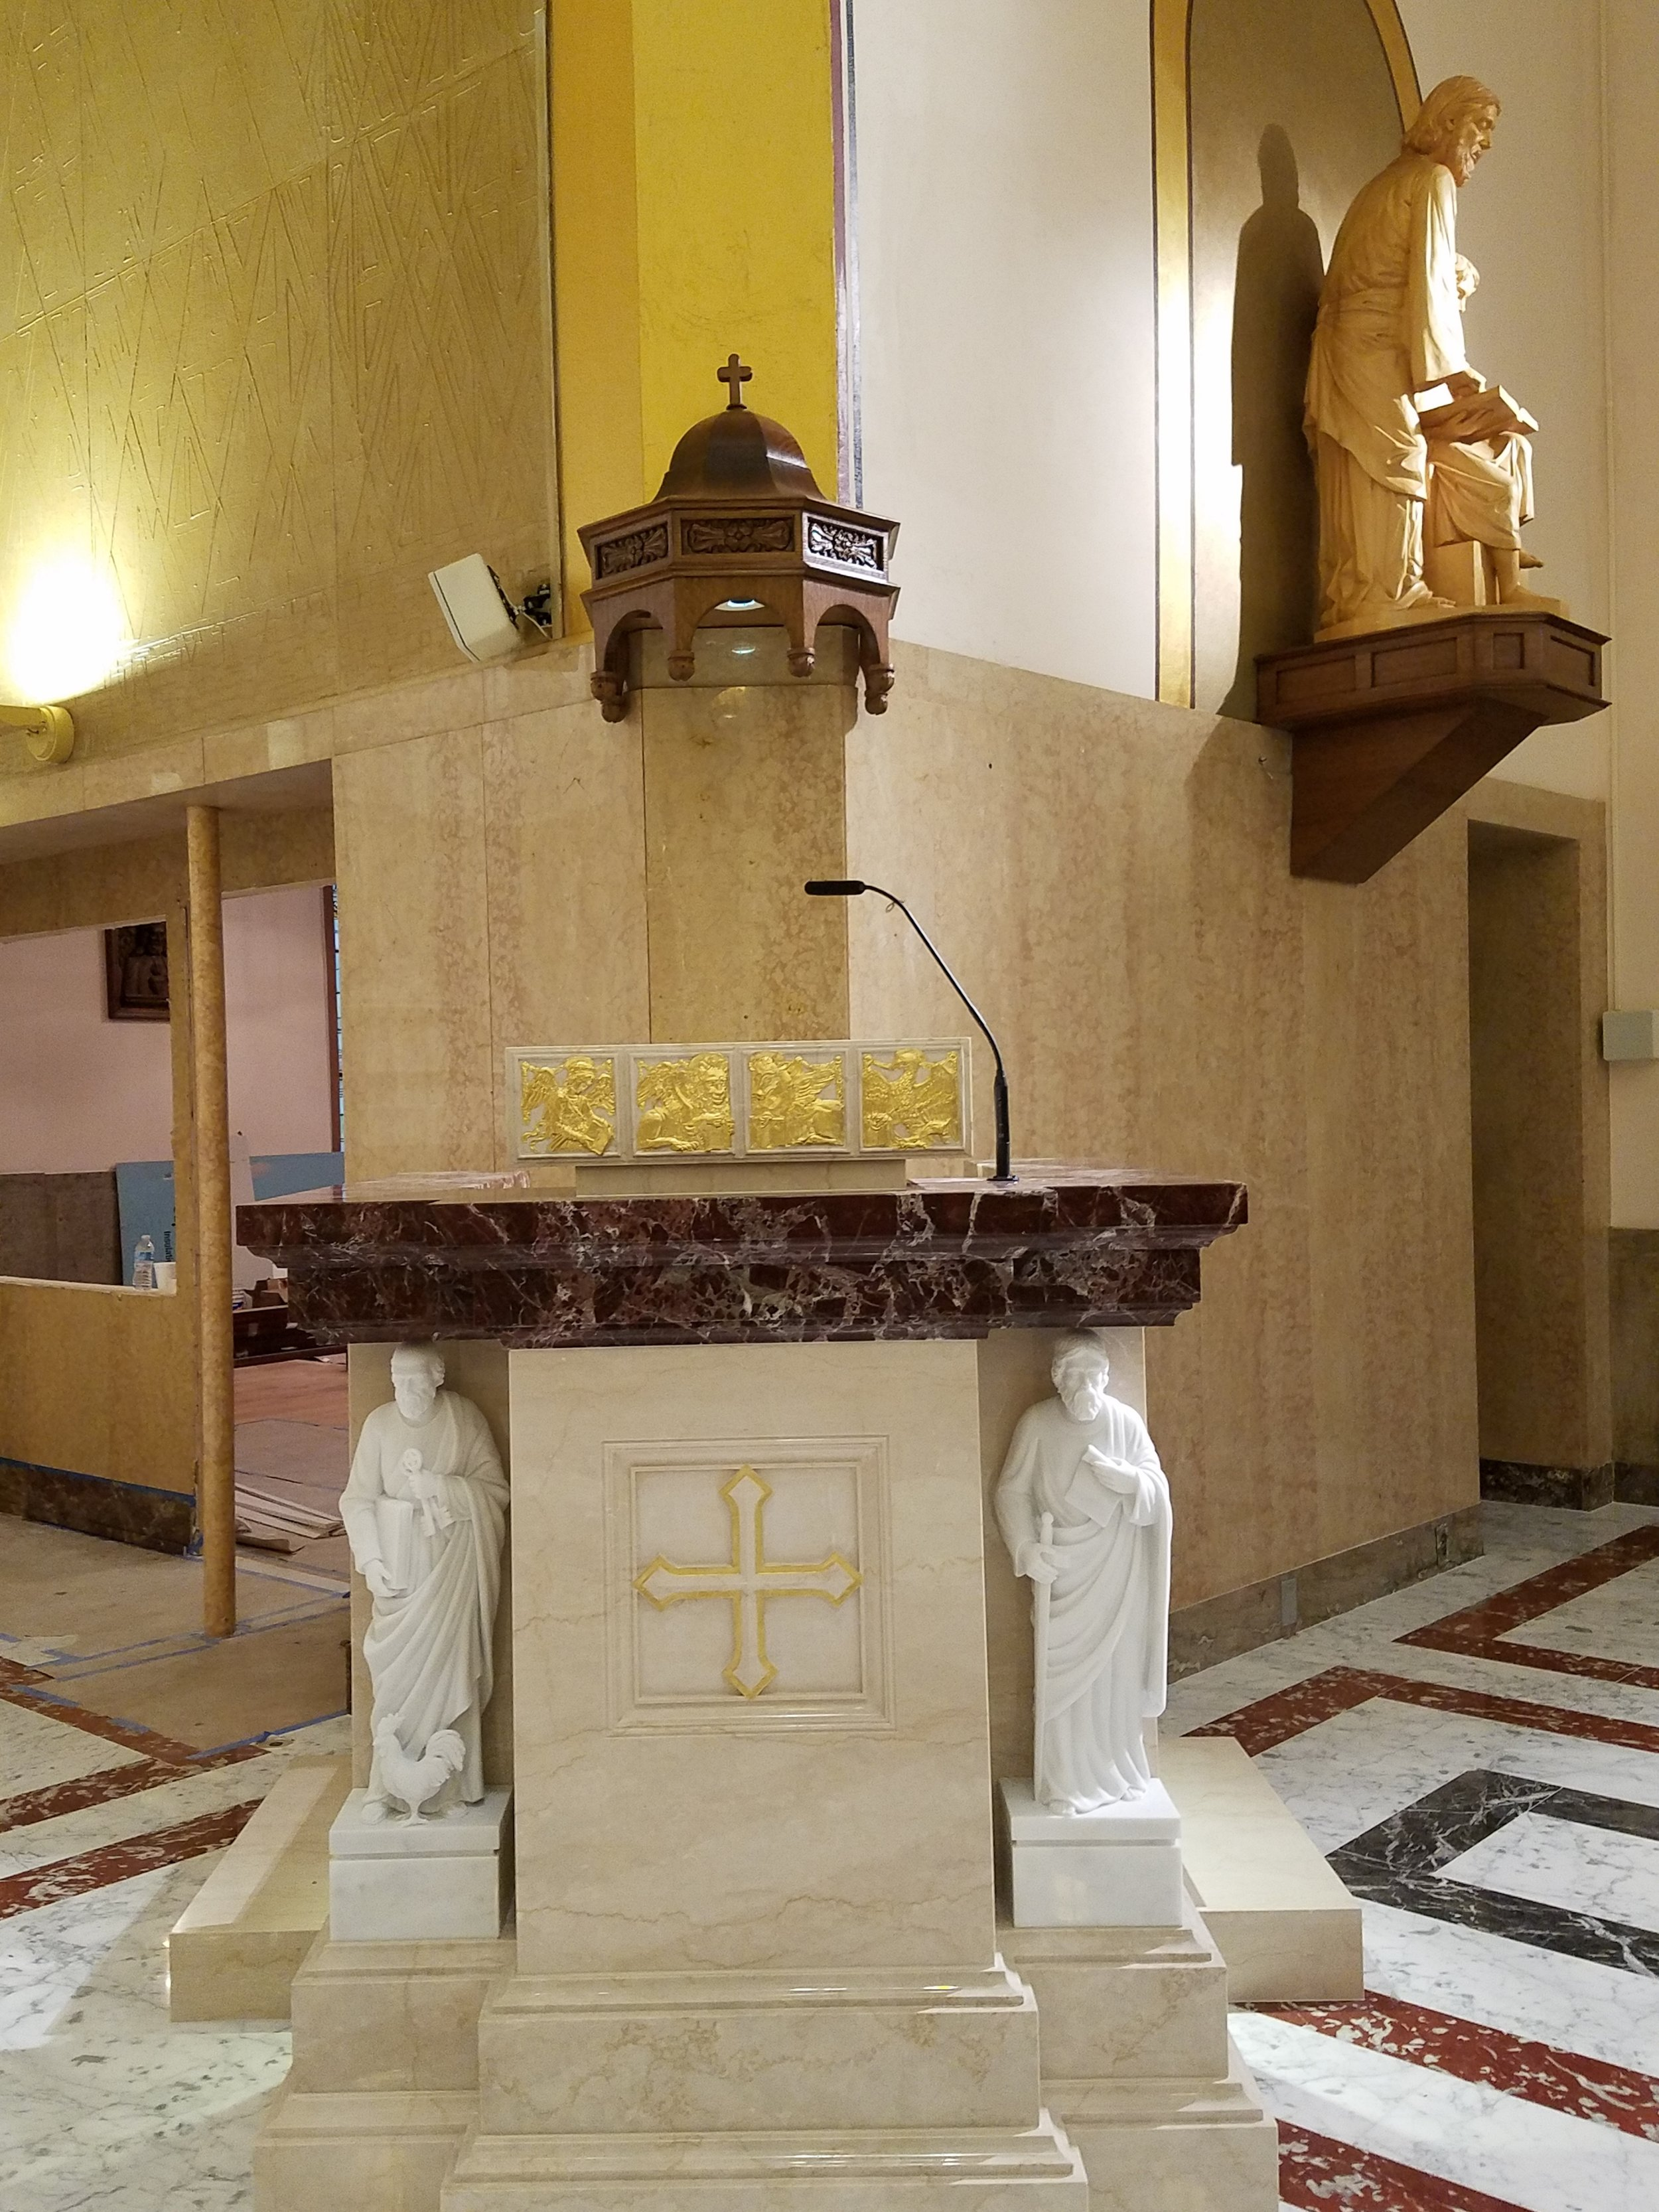 CAMM DT-1 speakers provide audio coverage in the Sanctuary and an Audio-Technica Engineered Series microphone with ML capsule is utilized on the Pulpit.